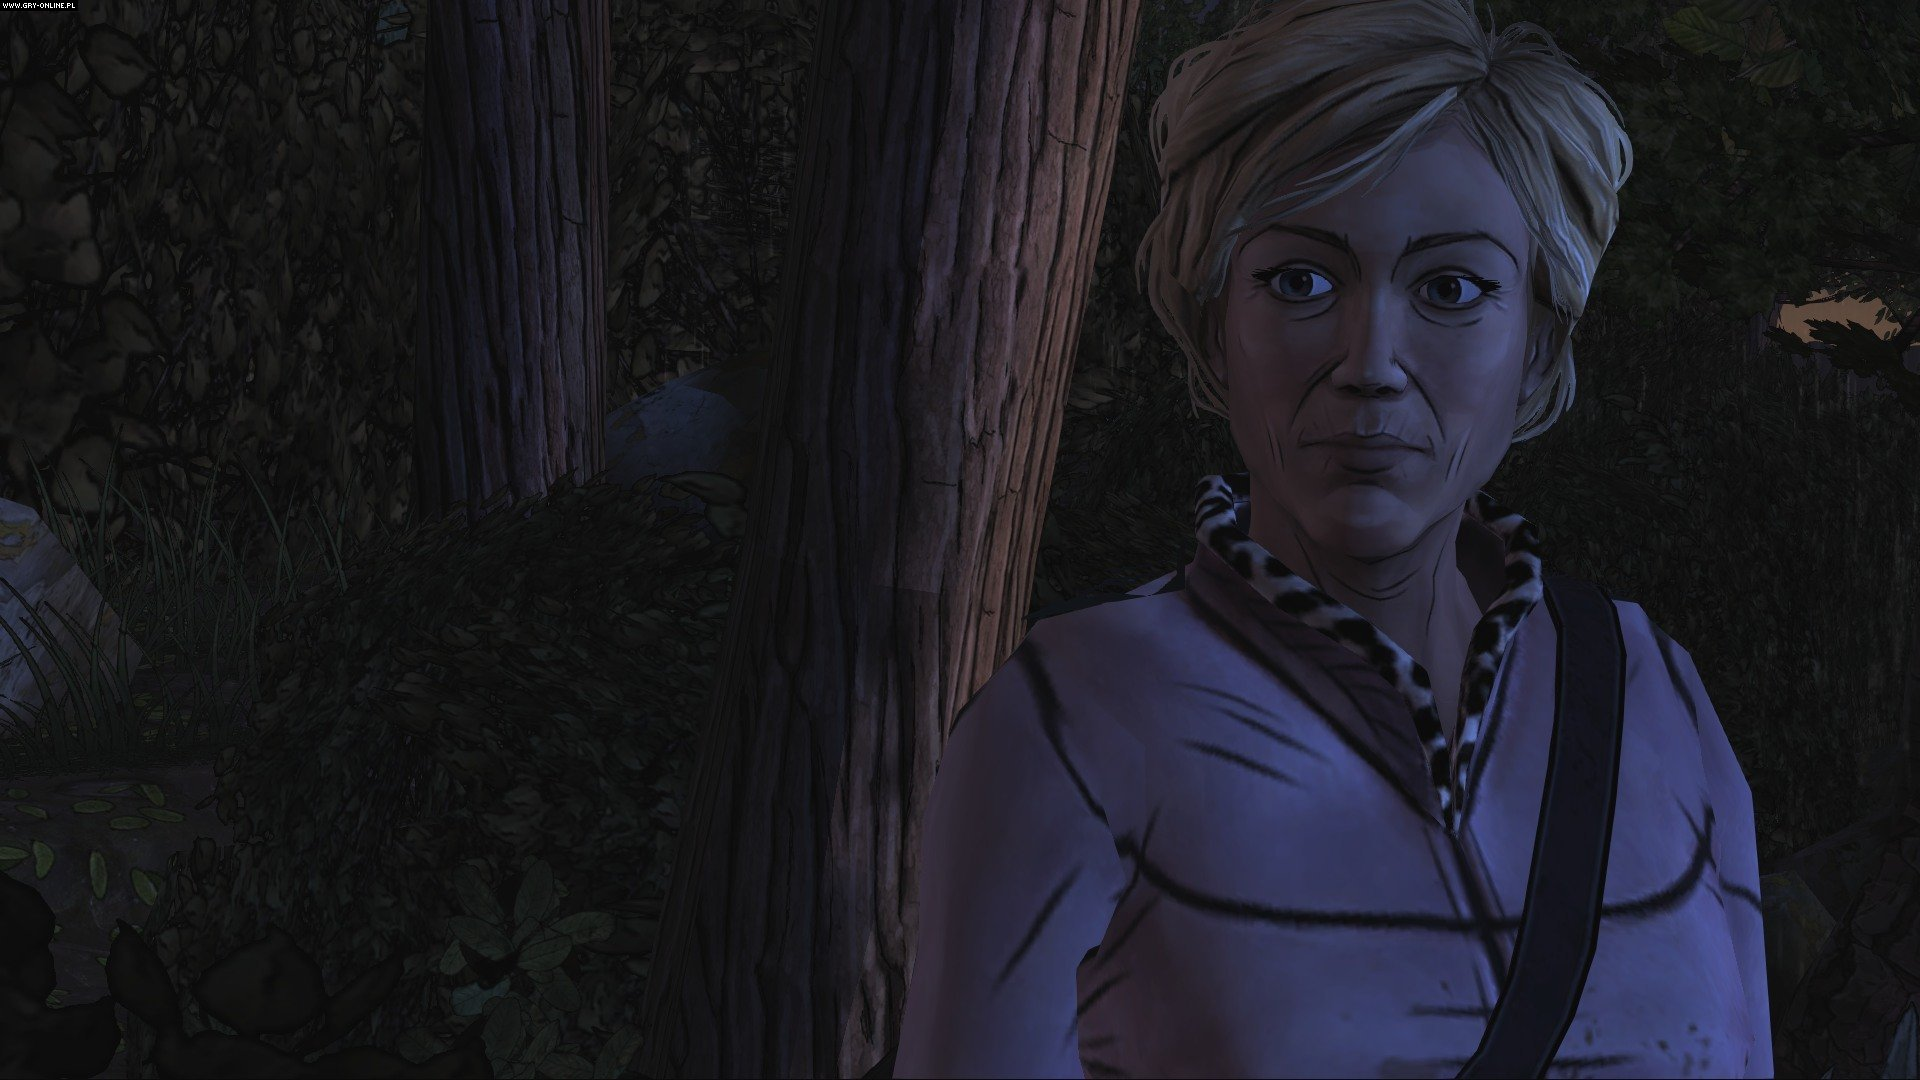 The Walking Dead: 400 Days PC Gry Screen 1/21, Telltale Games